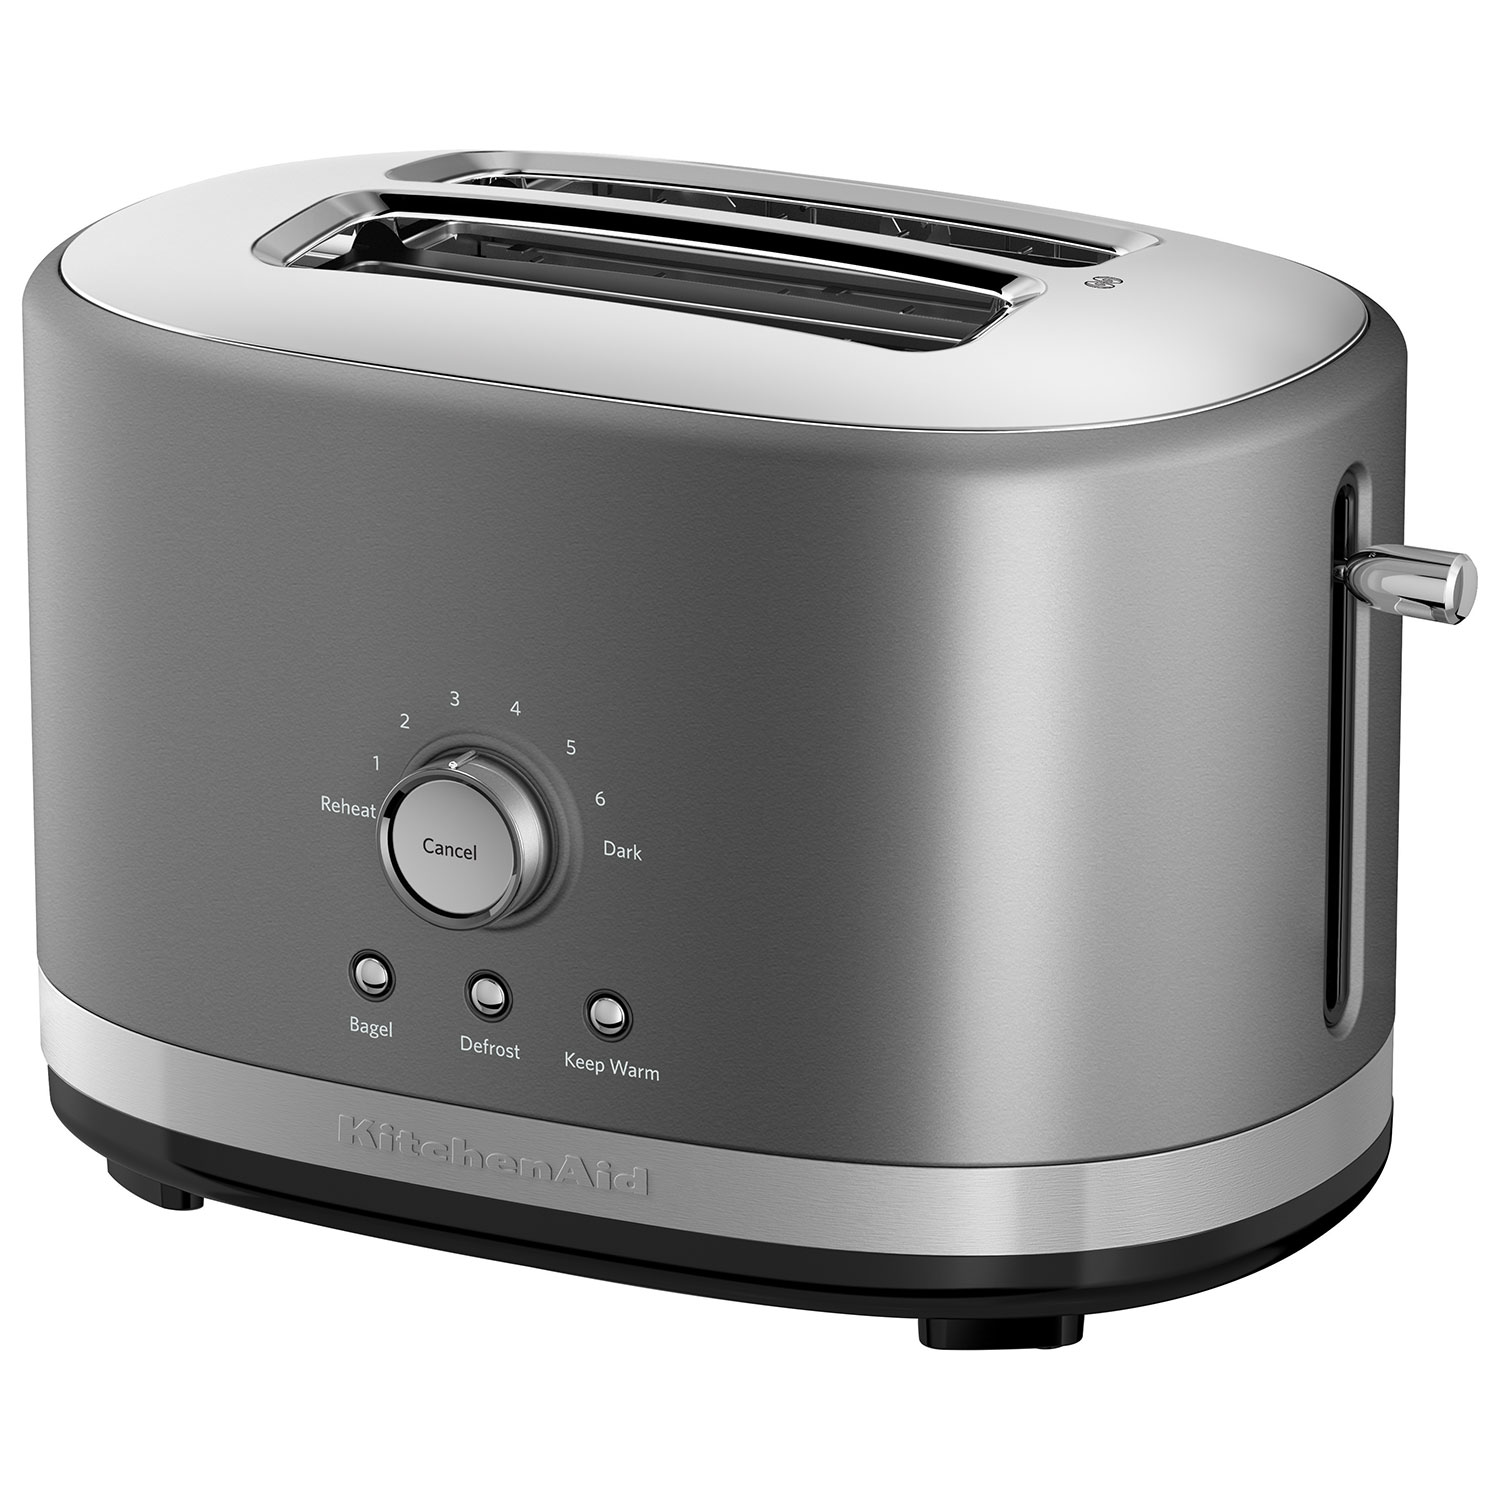 KitchenAid Toaster - 2-Slice - Contour Silver : Toasters - Best ...